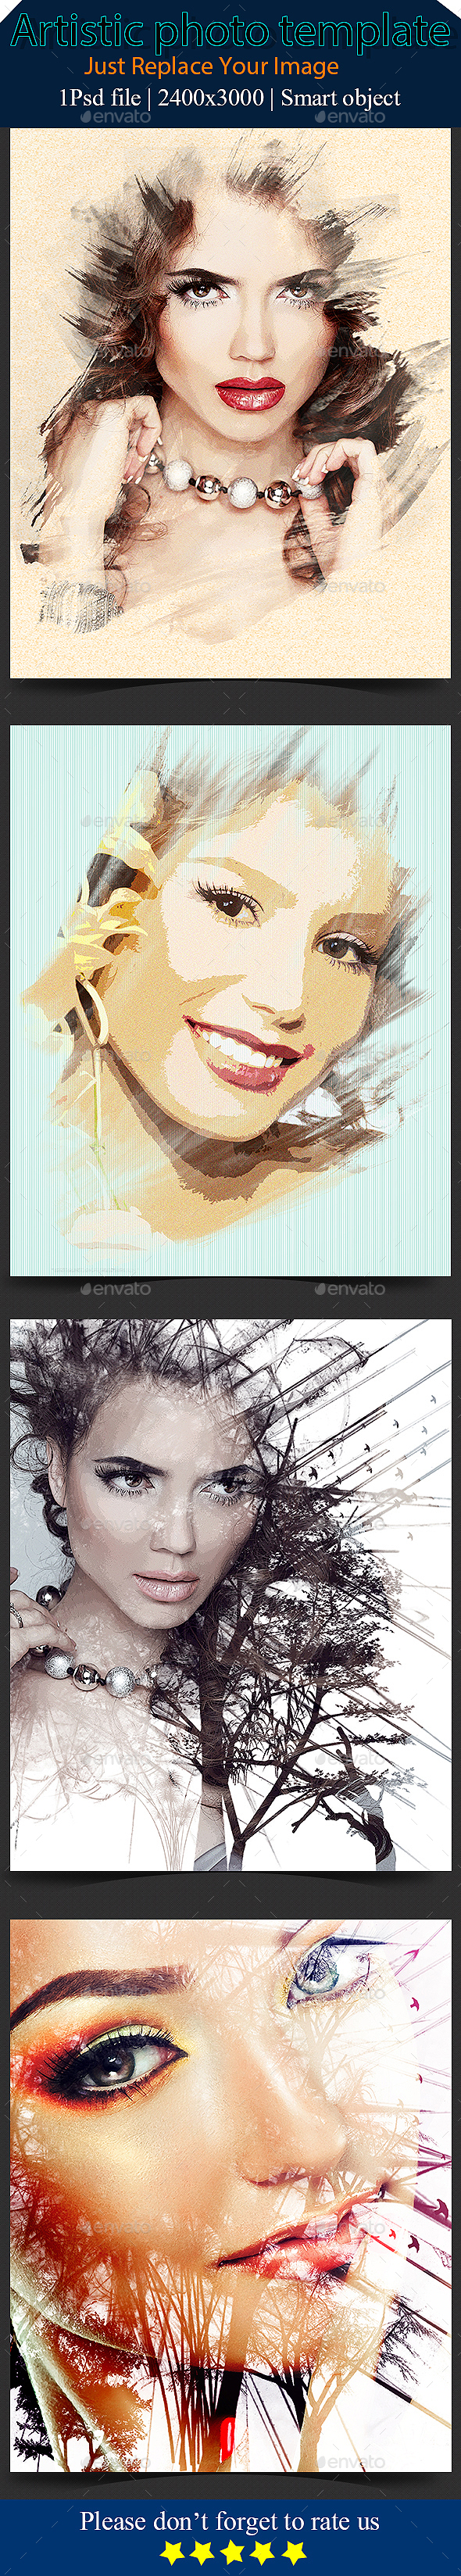 Paint - Artistic FX Photoshop Template (Artistic)